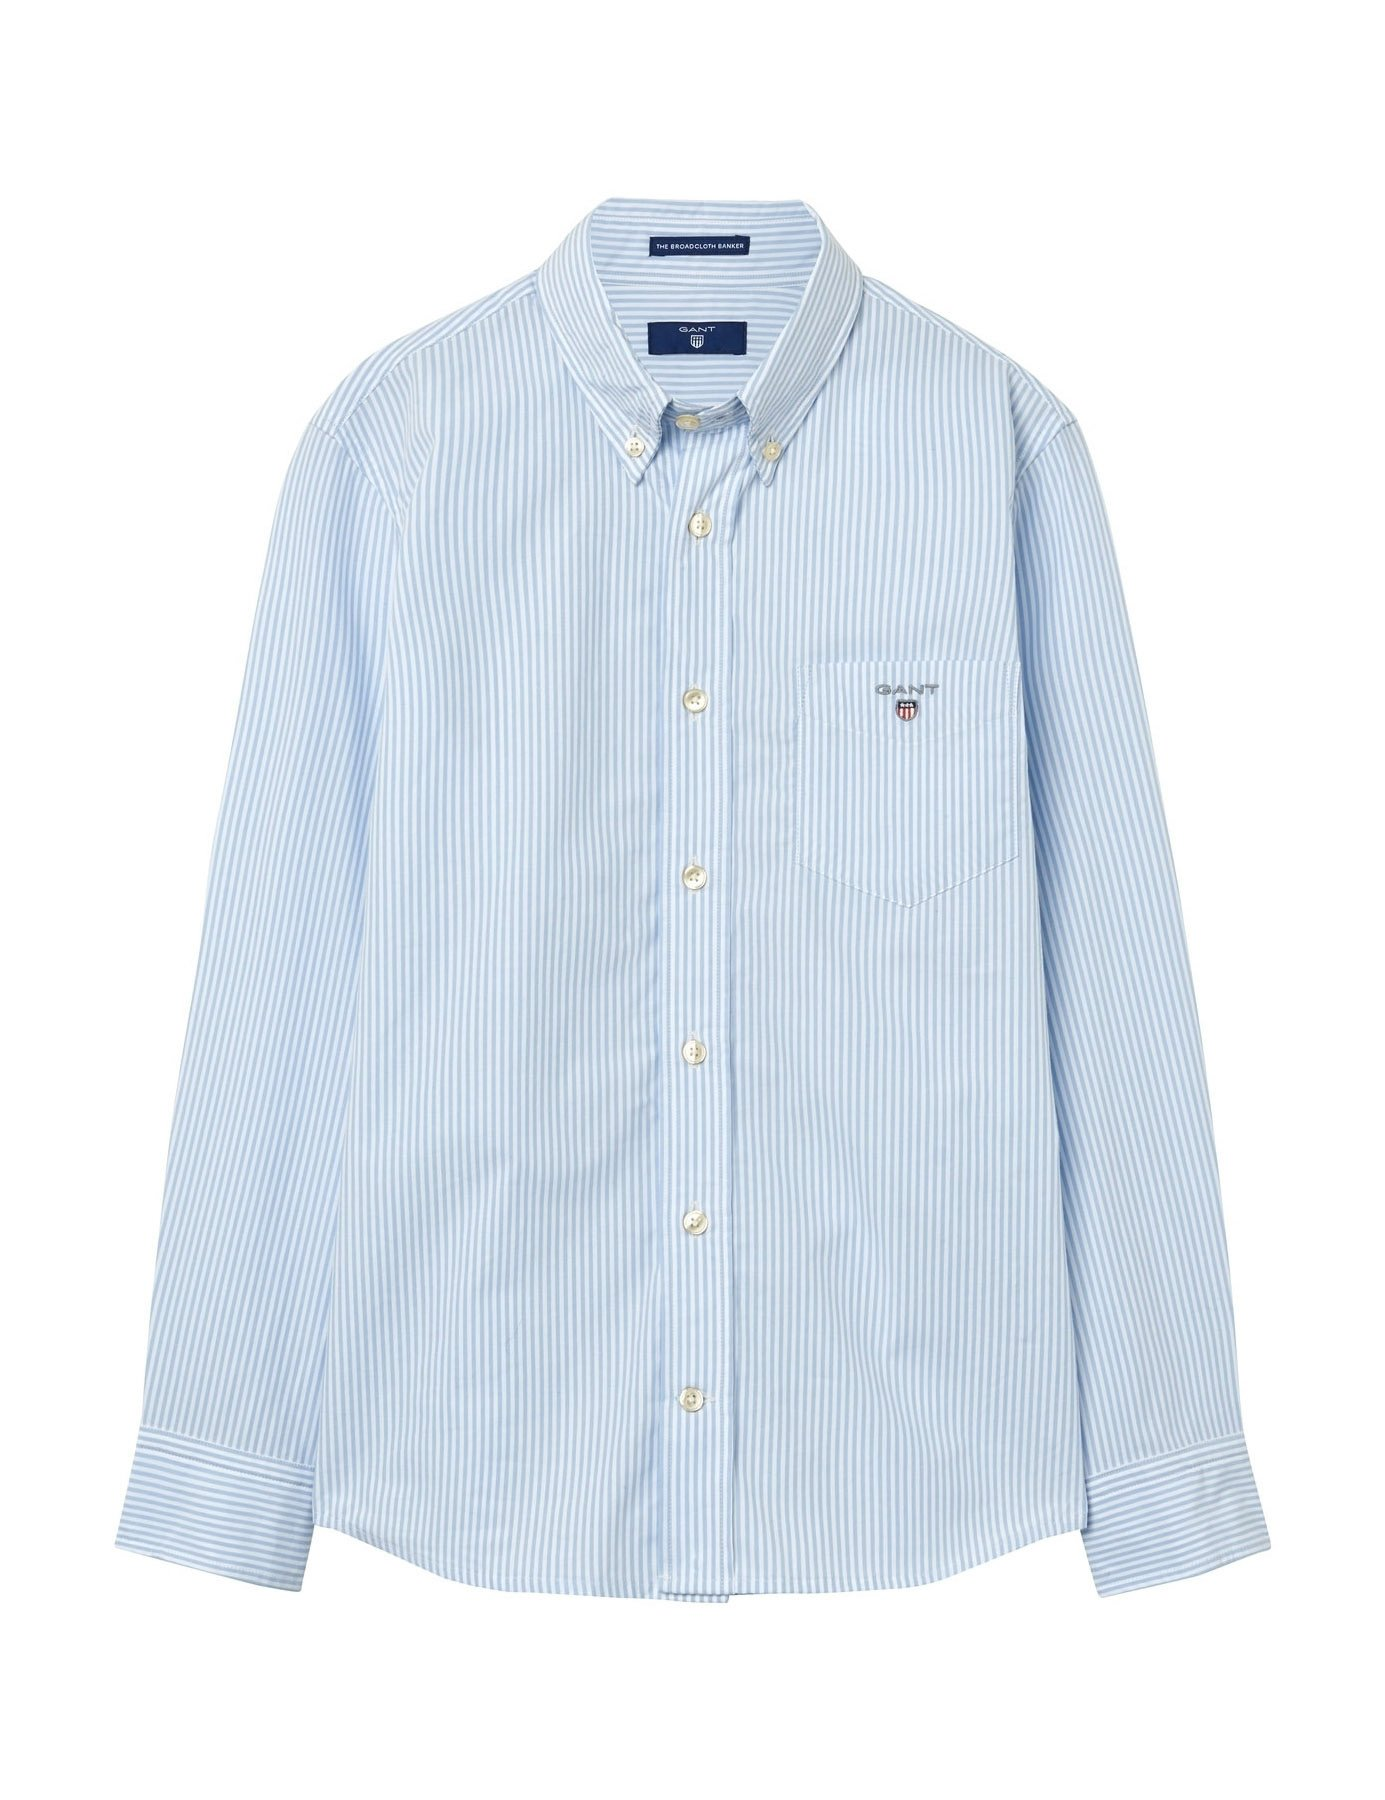 Gant Boy's Blue Stripped Shirt in Size 13-14 Years (158-164 cm) Blue by GANT